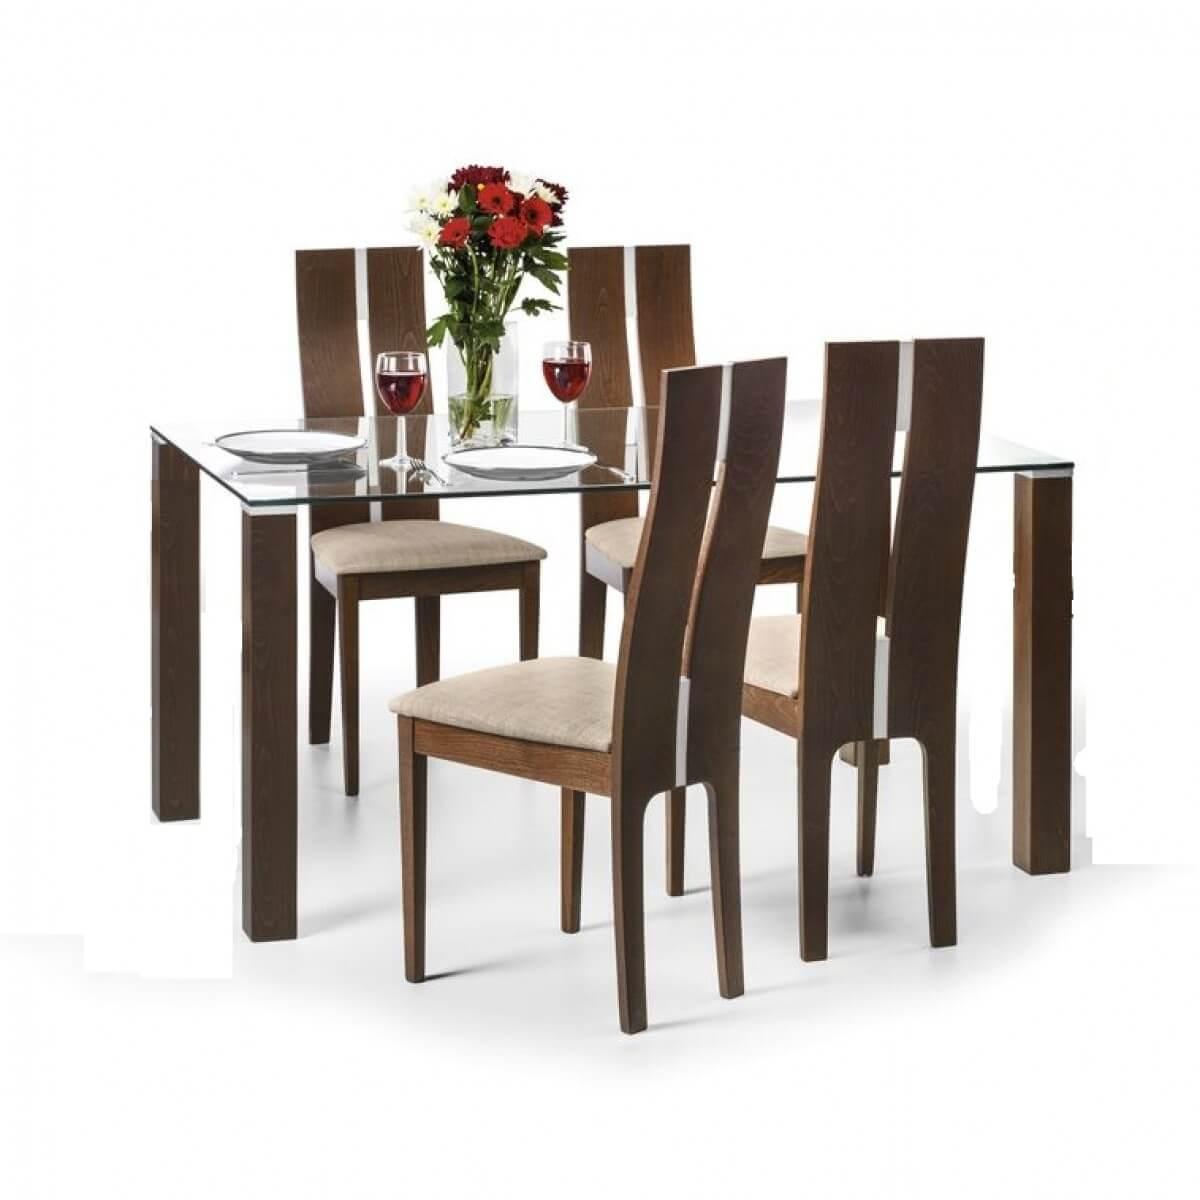 https://www.firstfurniture.co.uk/pub/media/catalog/product/j/u/julian_bowen_cayman_dining_table_and_chairs_cay101_cay102_1-1200x1200.jpg